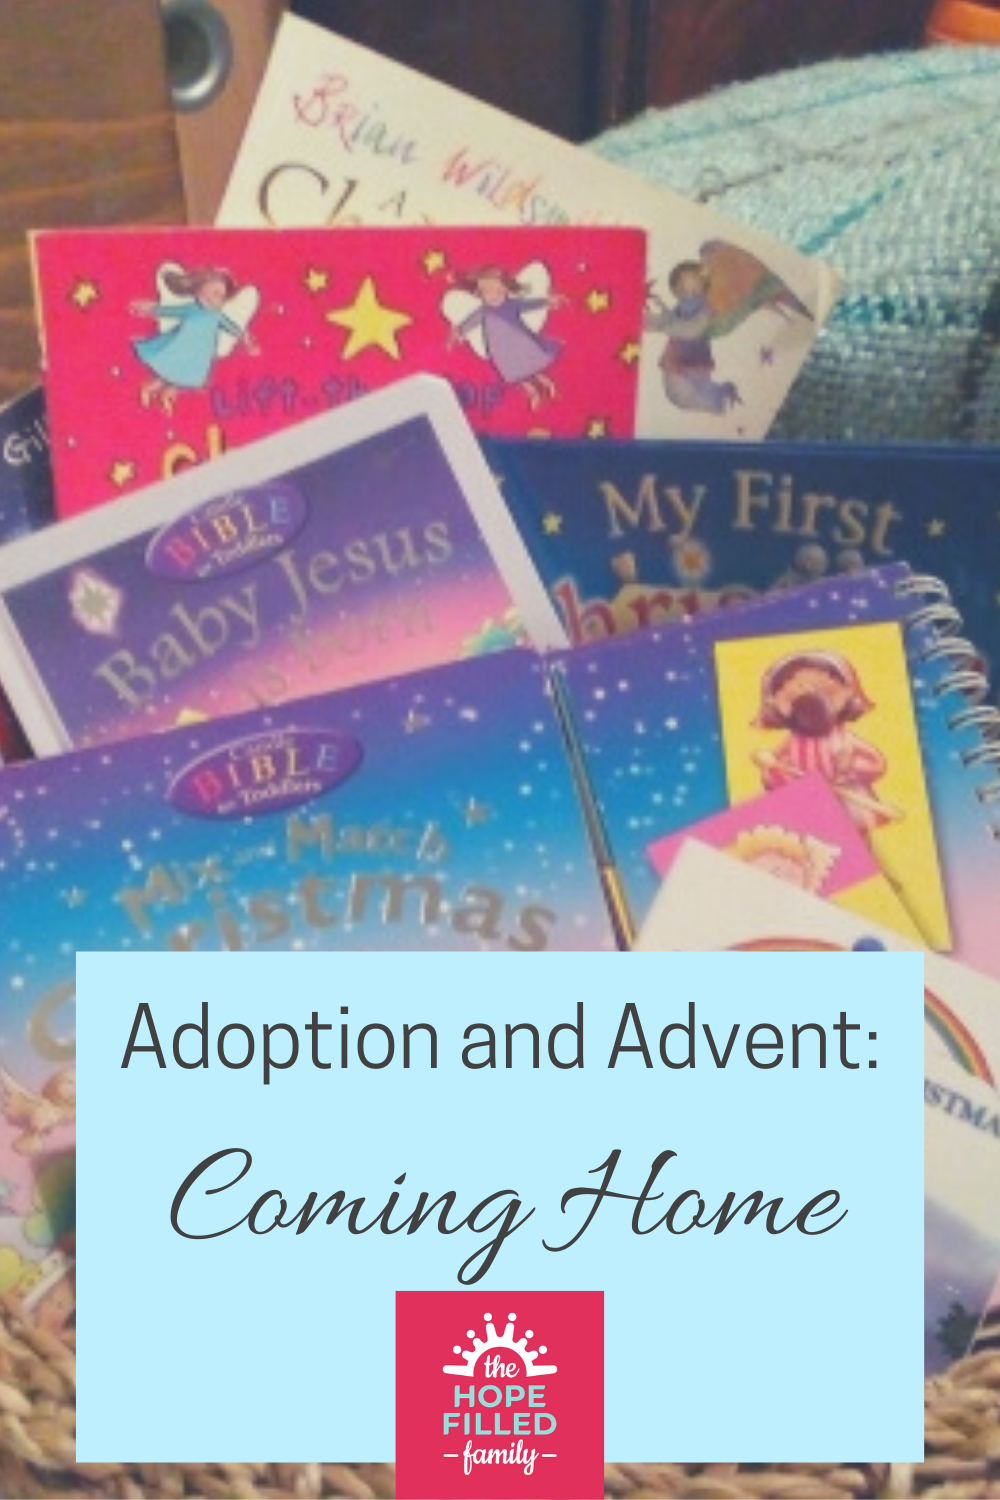 How Advent and adoption are linked; how Advent is a metaphor for our spiritual adoption; and how earthly adoption can be a metaphor for Advent. Chapter 1 of Redeeming Advent by Lucy Rycroft.